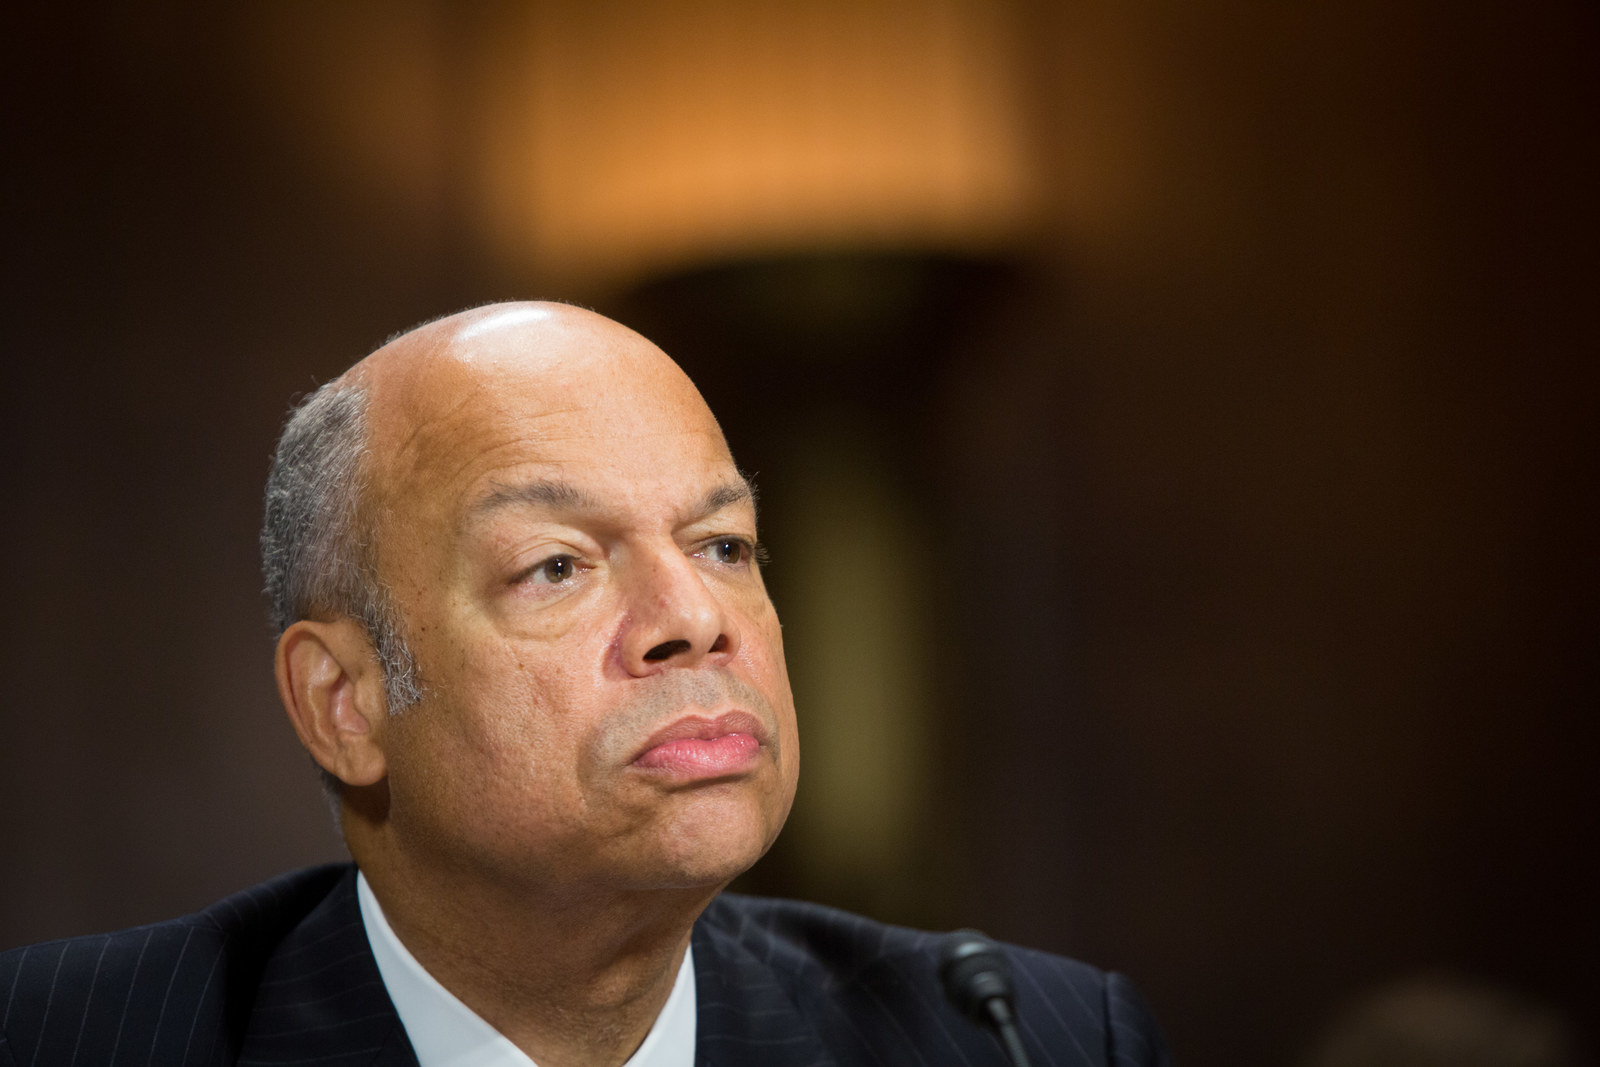 Homeland Security Chief Concerned Hackers Could Infiltrate Voting System